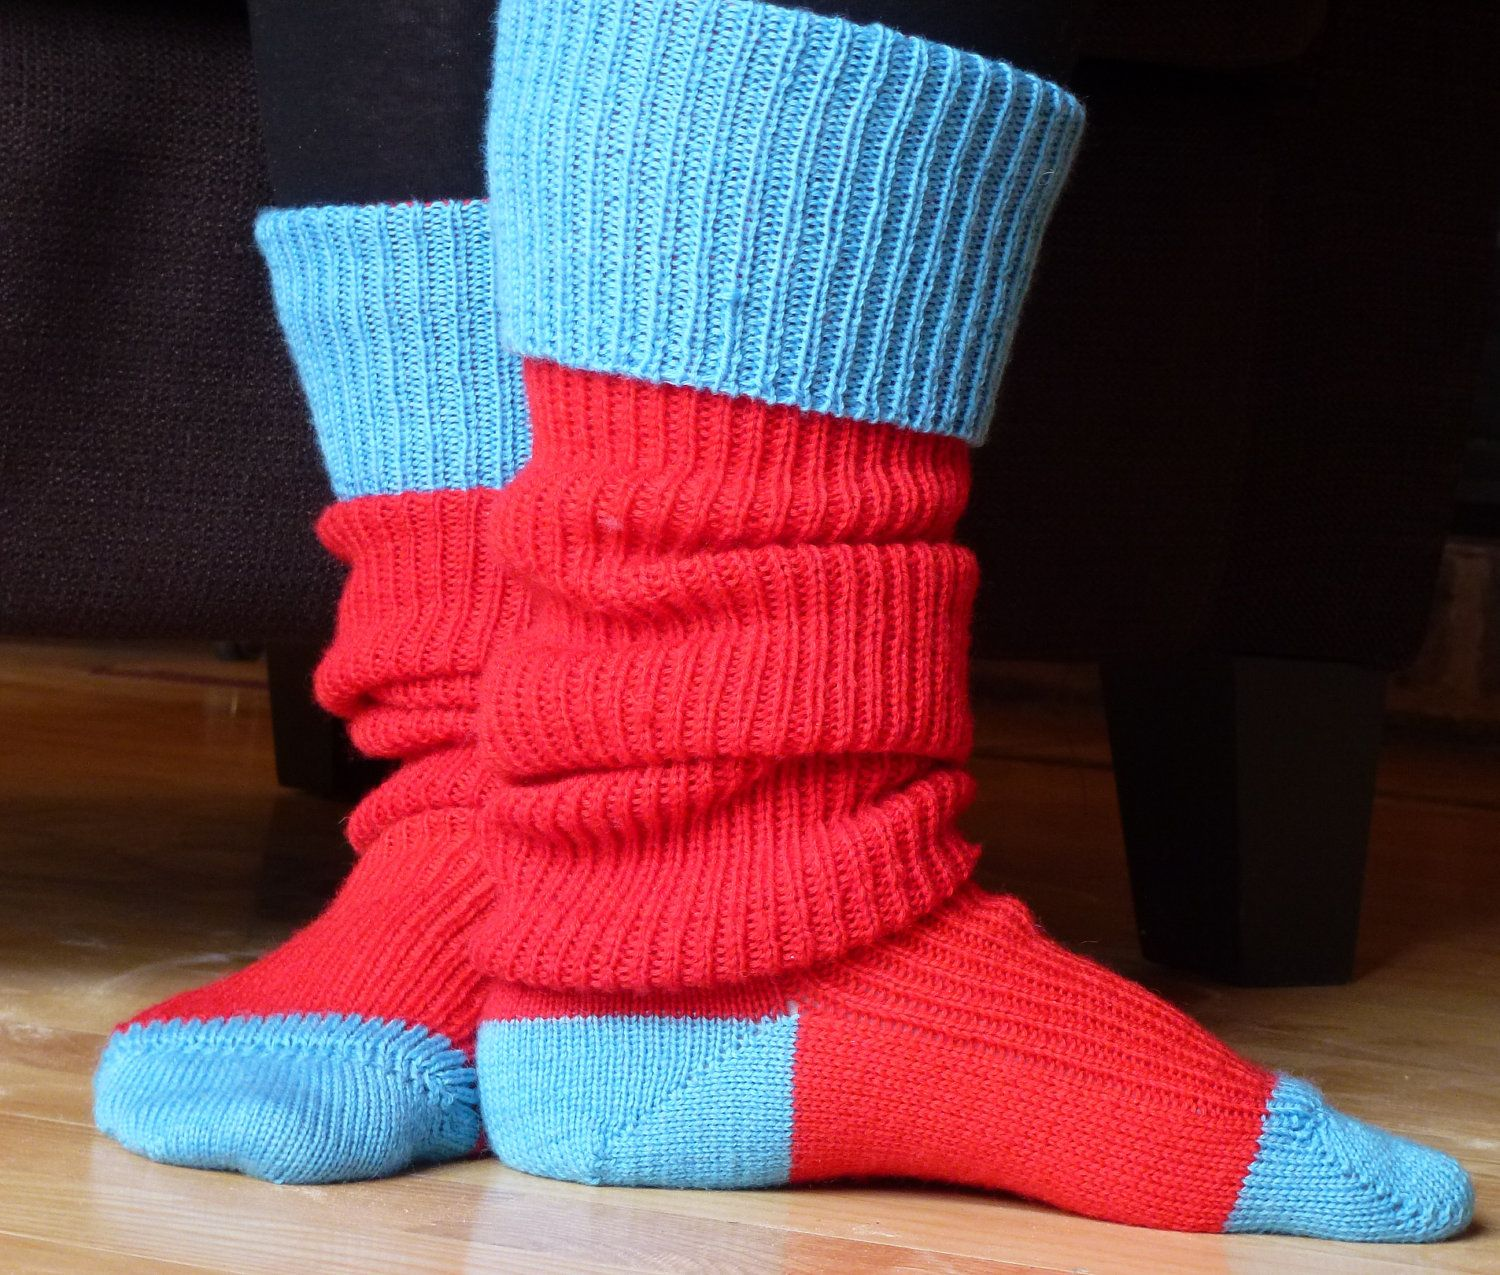 fe9d4880a12 Thigh high - KNITTED WOOL SOCKS - Better than leg warmers - extra long -  25cm foot - Tomatoe red with sky blue trimming.. £30.00